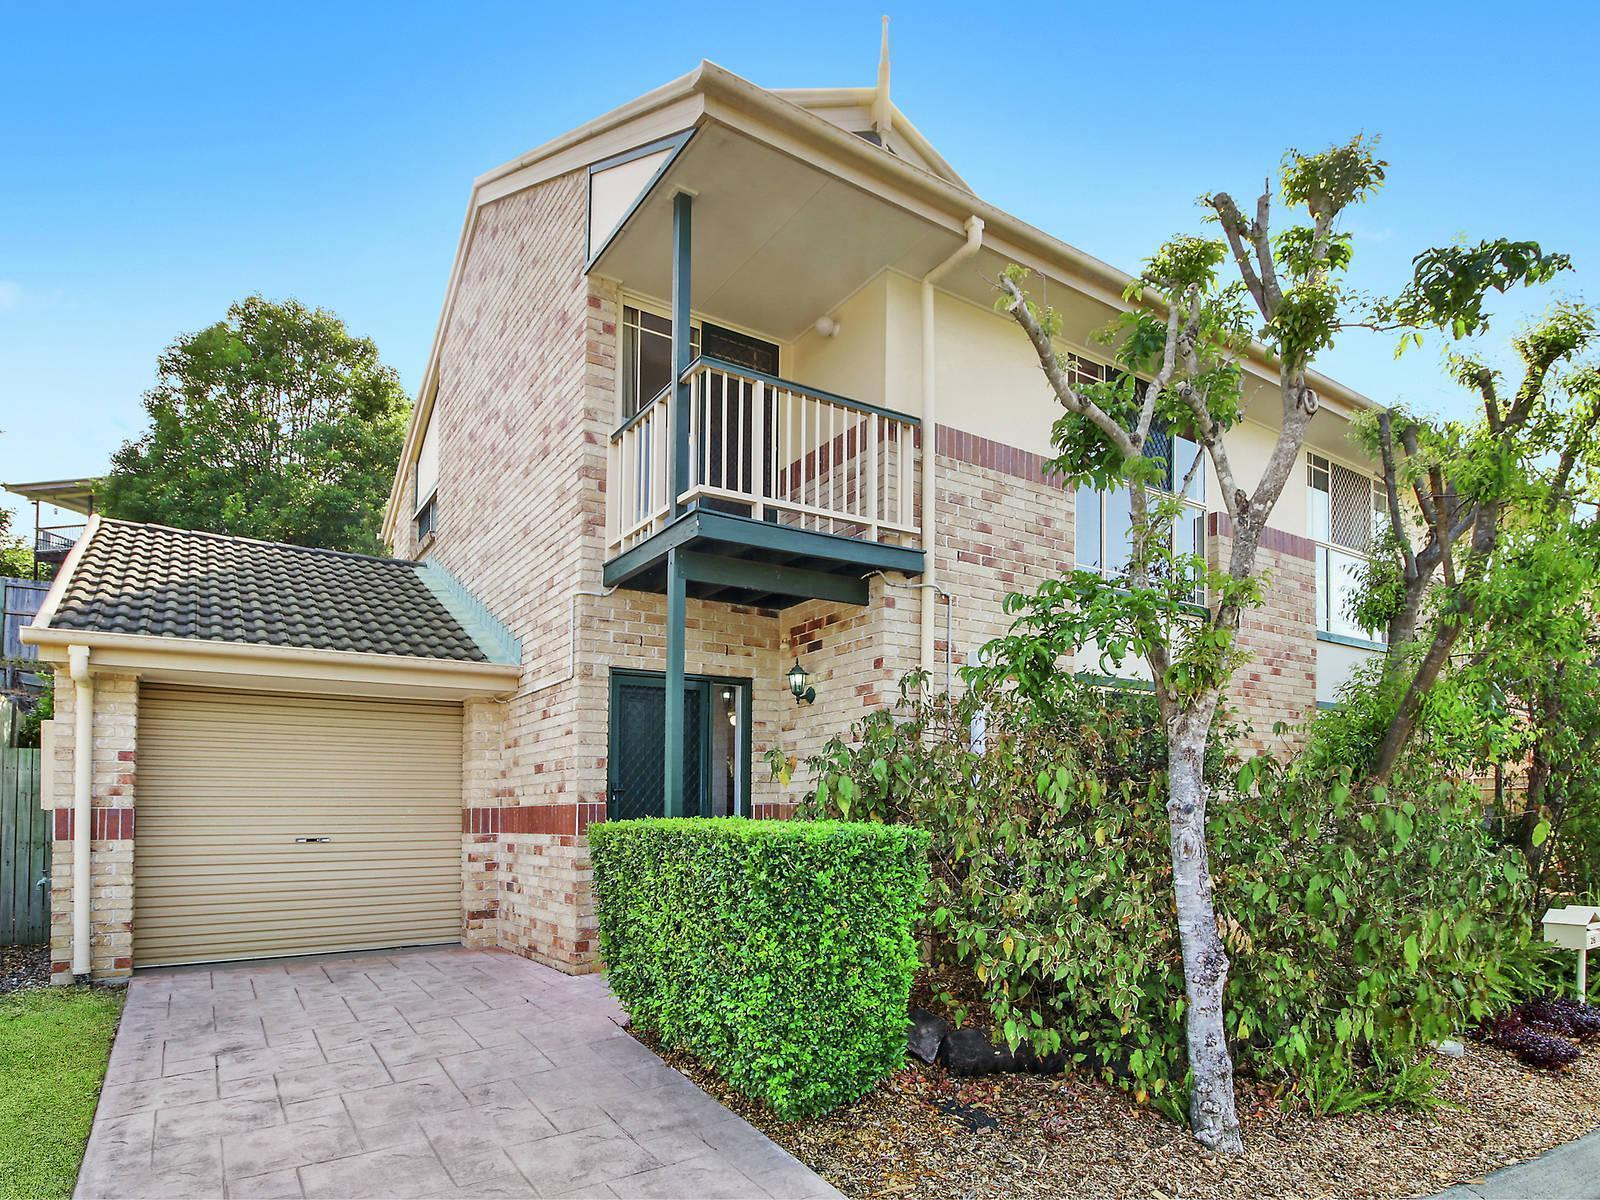 26/7 Titania Street,Morningside, QLD Townhouse - For Sale - McGrath Estate Agents